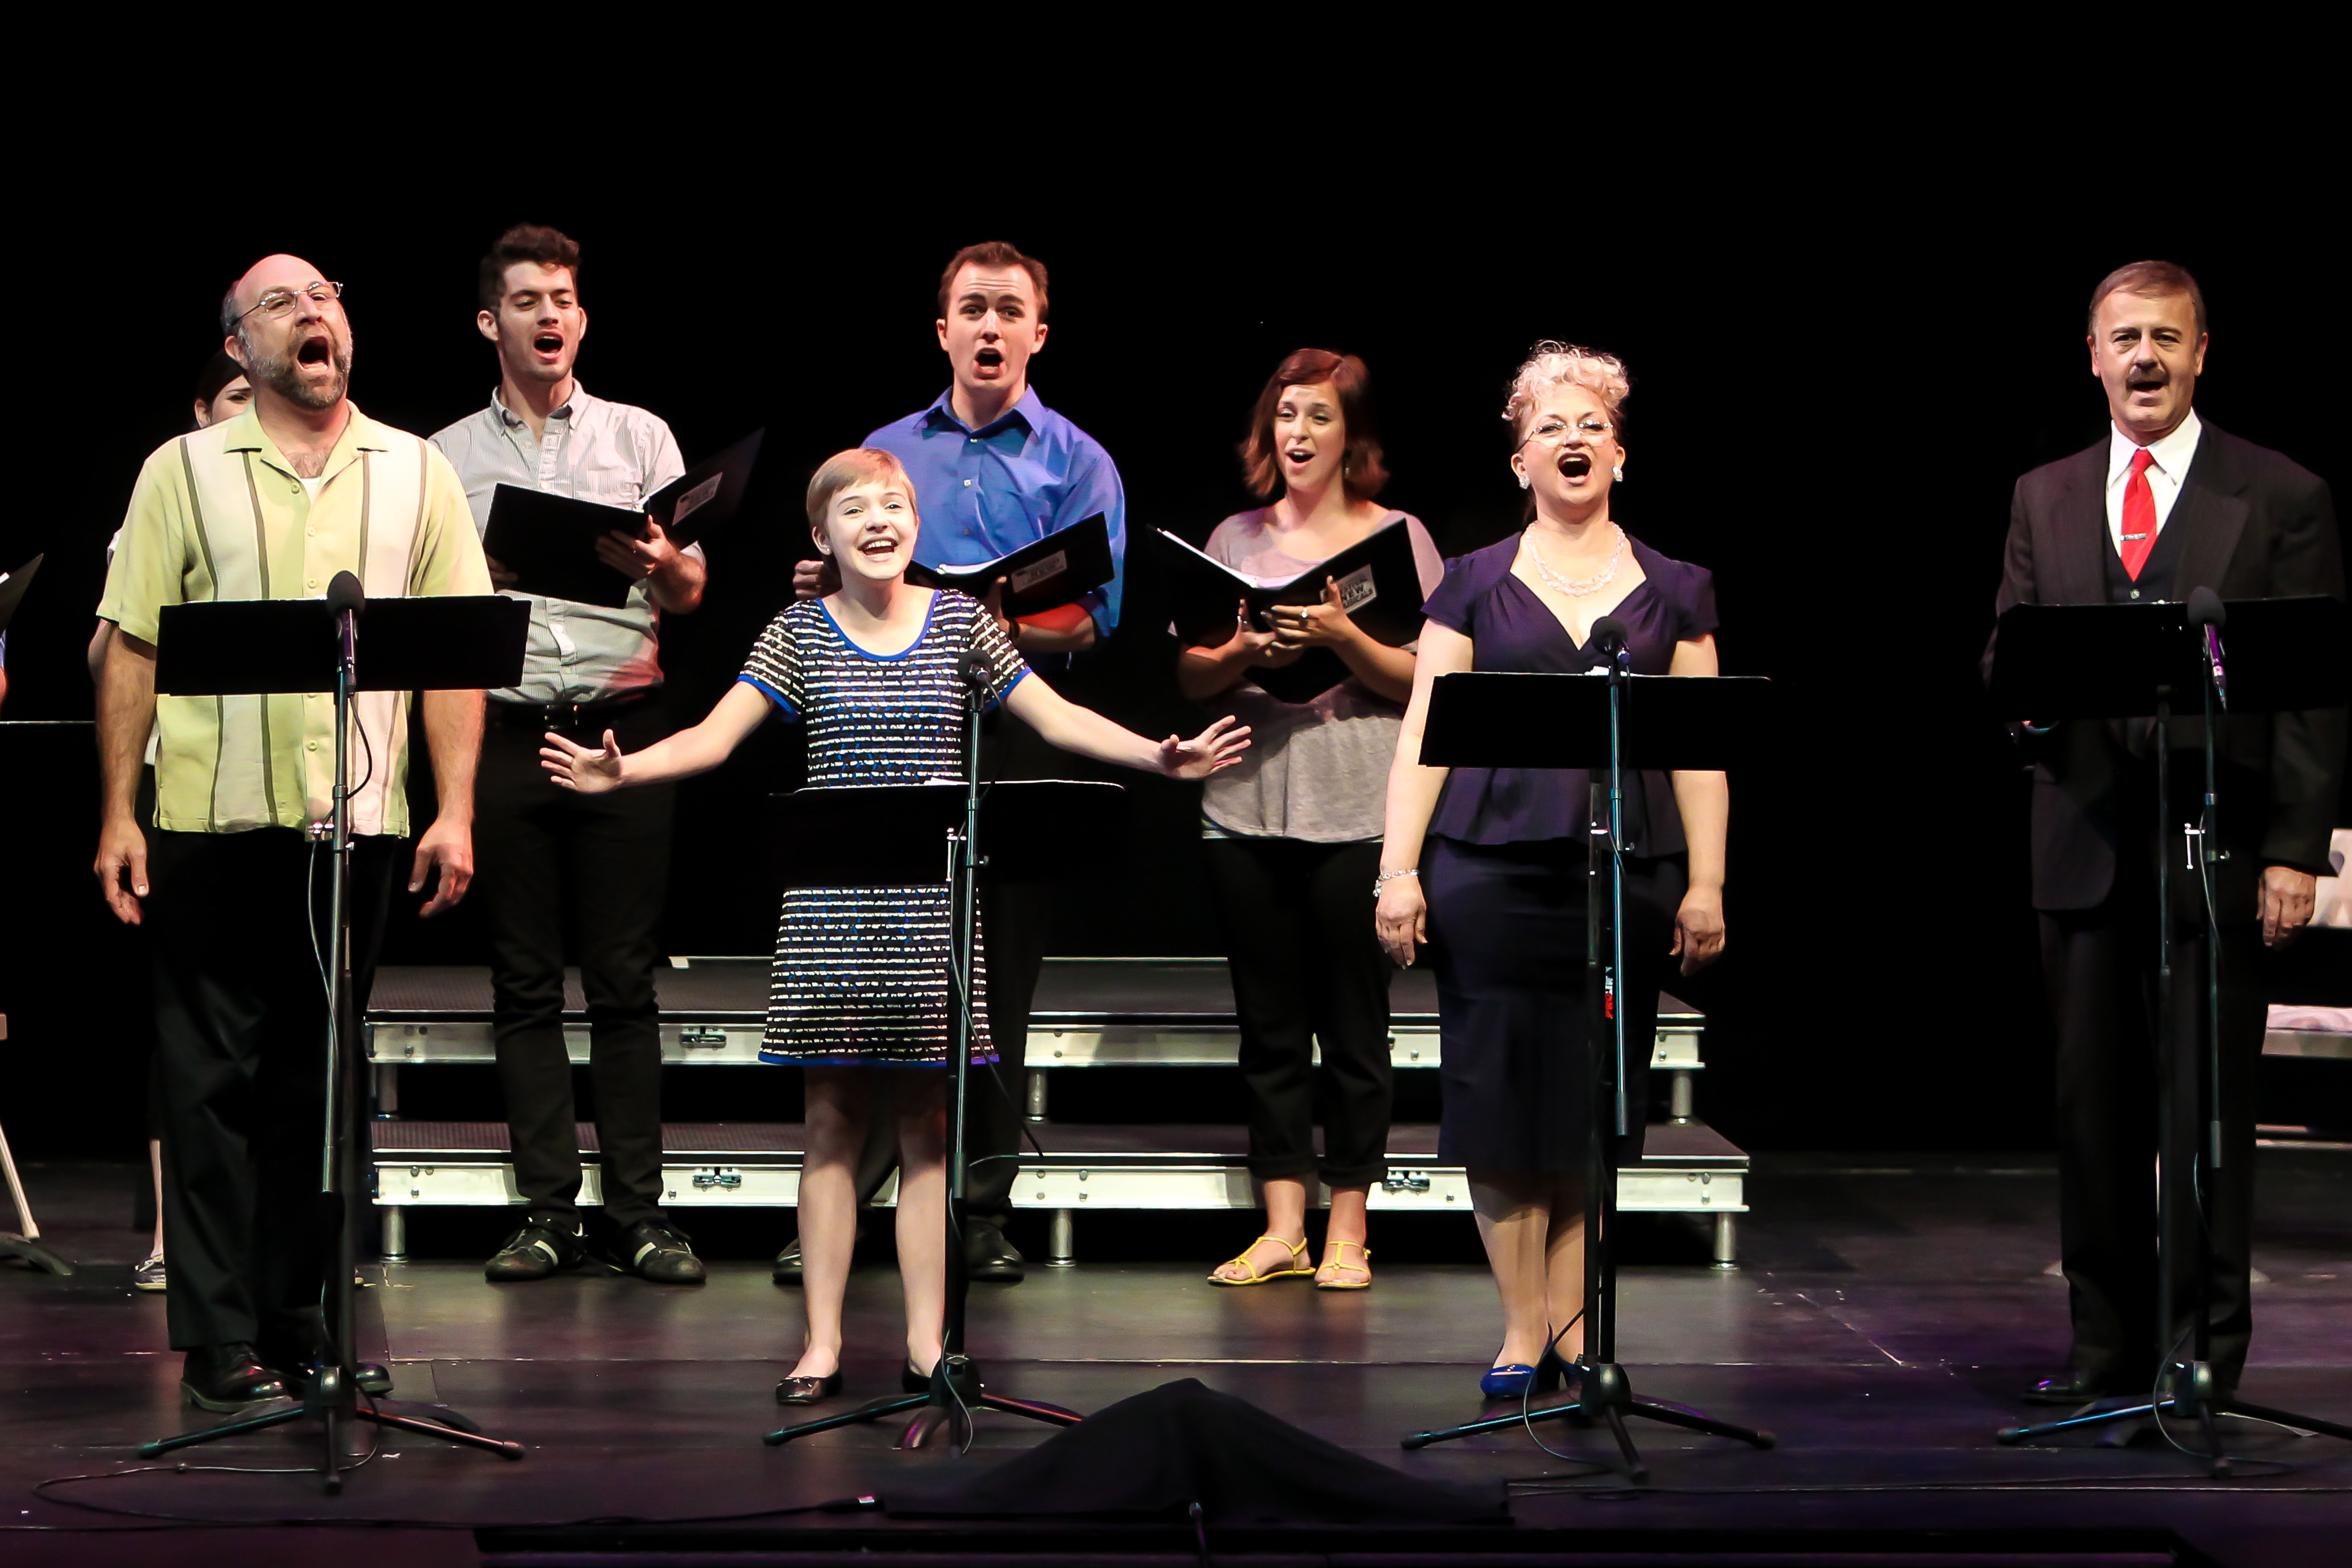 Photo Flash: Inside look at Village Theatre's 13th Annual Festival of New Musicals